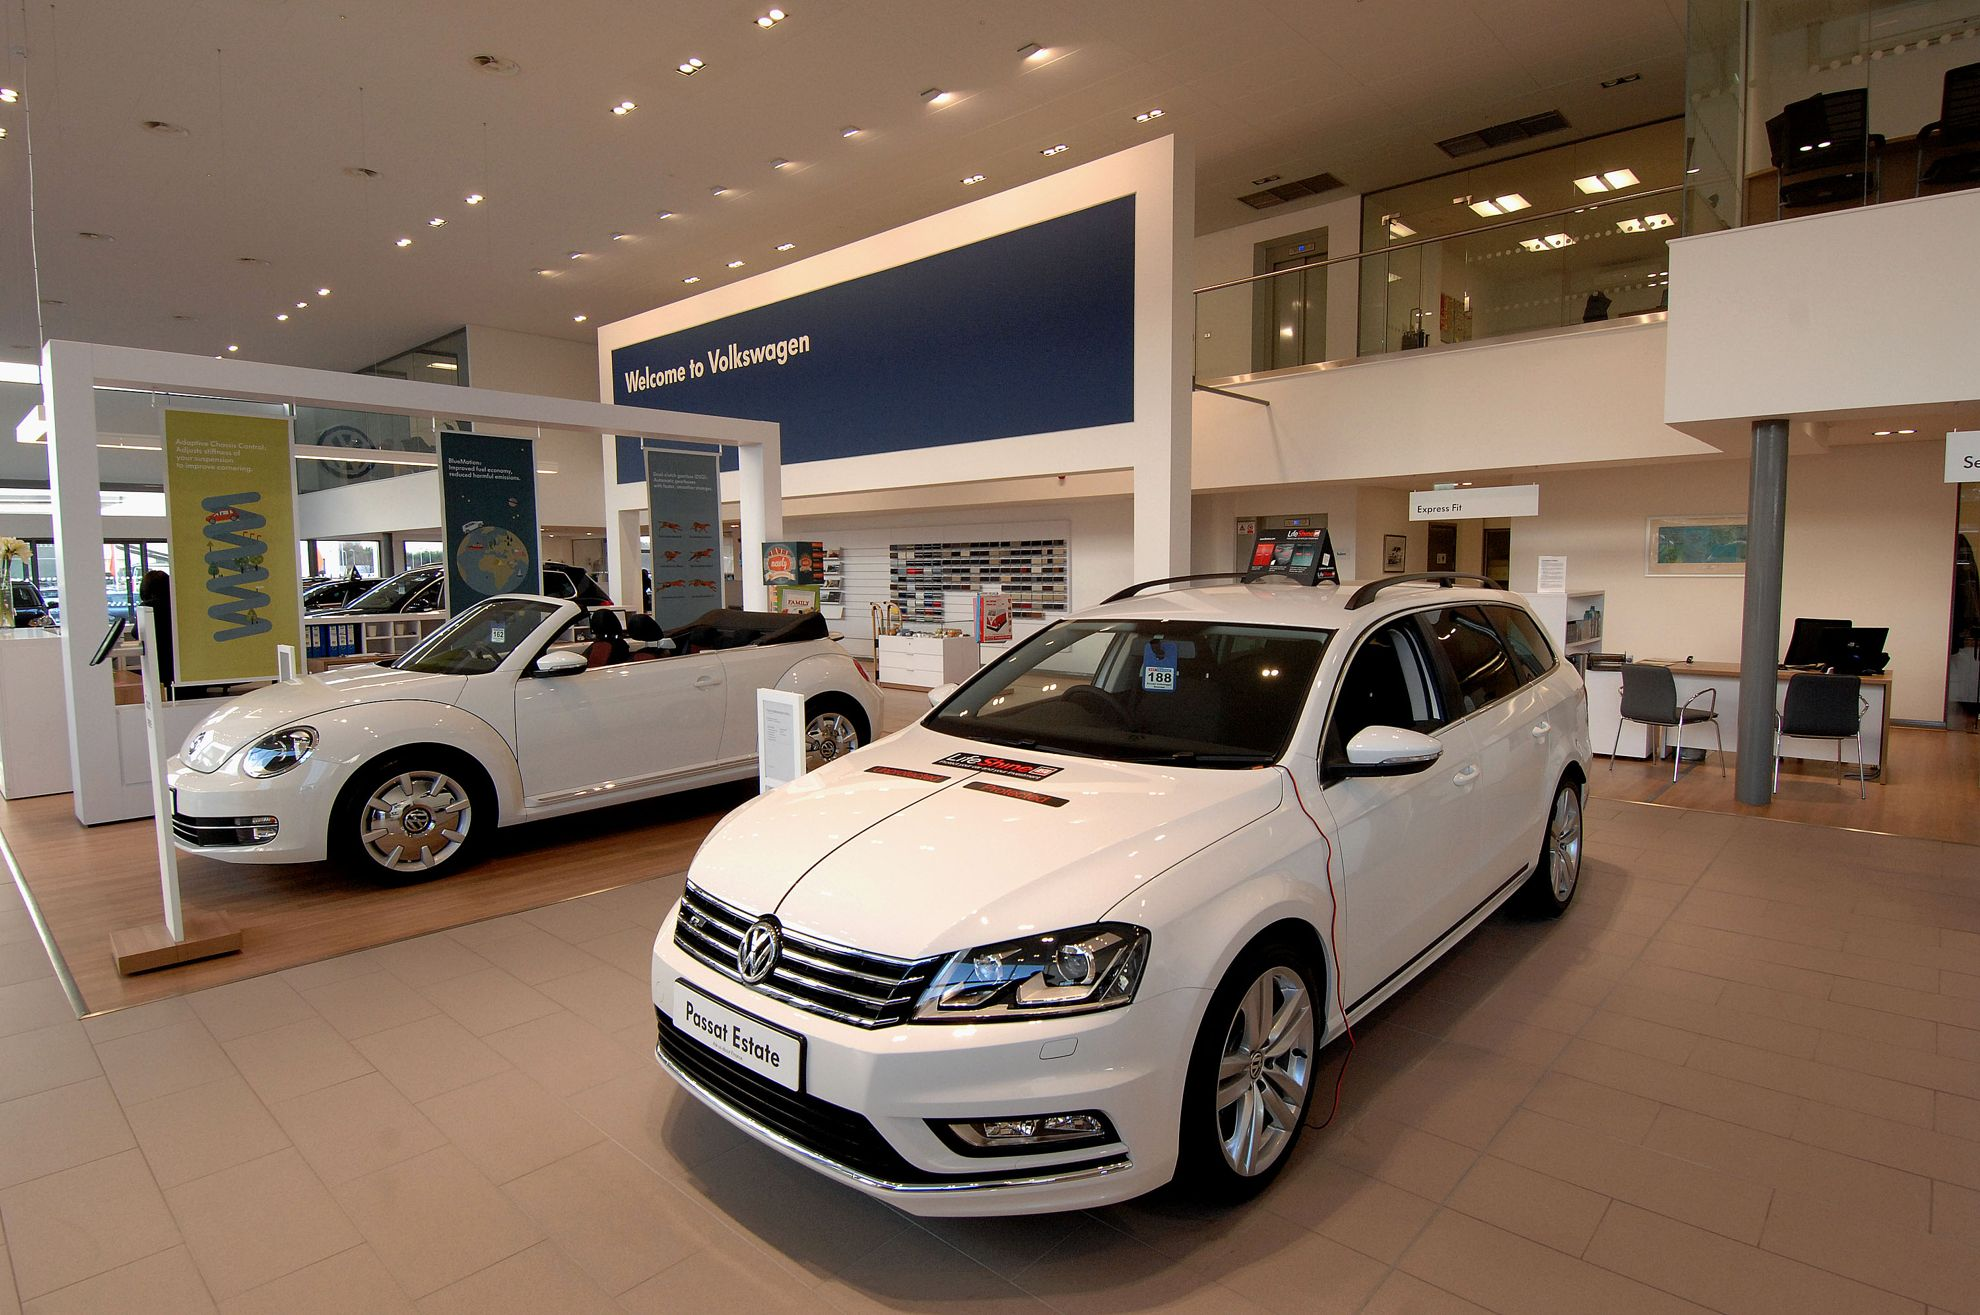 Volkswagen Dealership Sinclair In Swansea